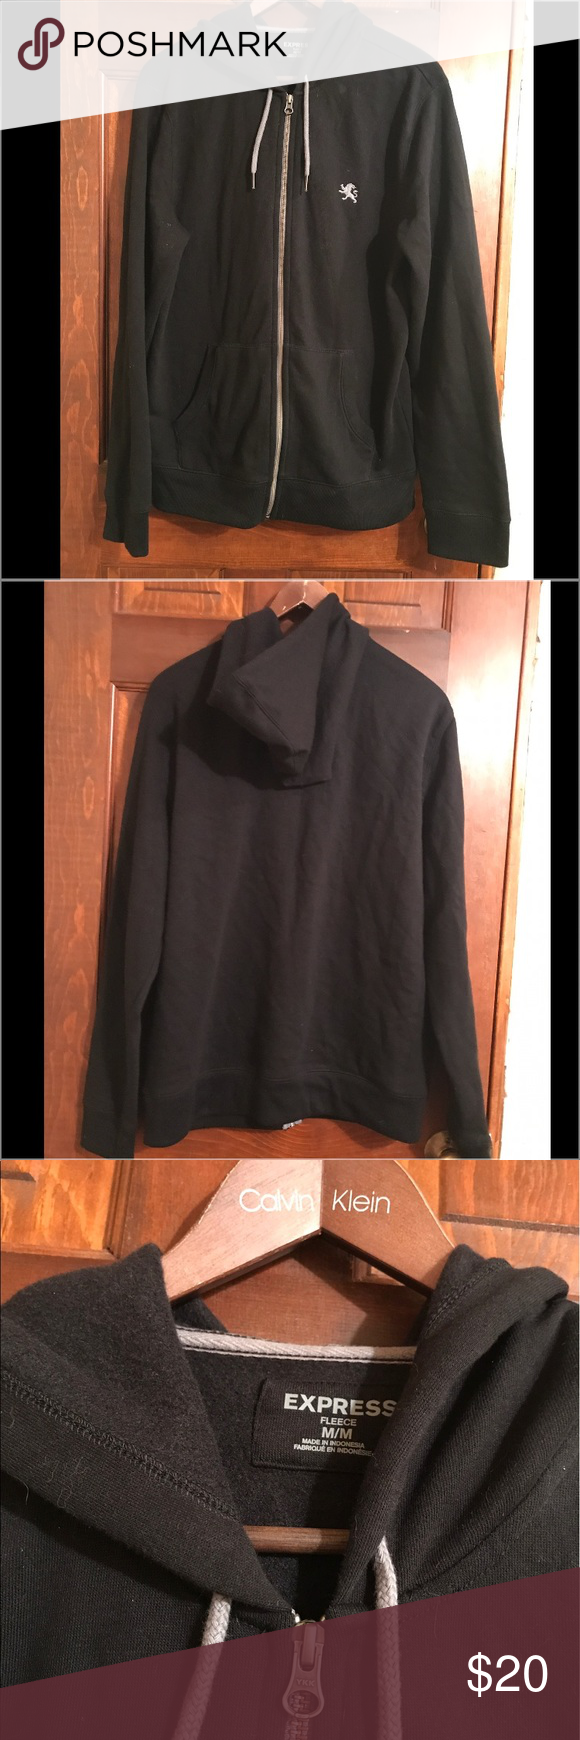 Express zip up - Mens express zip up hoodie. Almost brand new. No visible flaws and amazingly soft and comfortable. No piling, definitely a steal! Size Medium Express Sweaters Zip Up